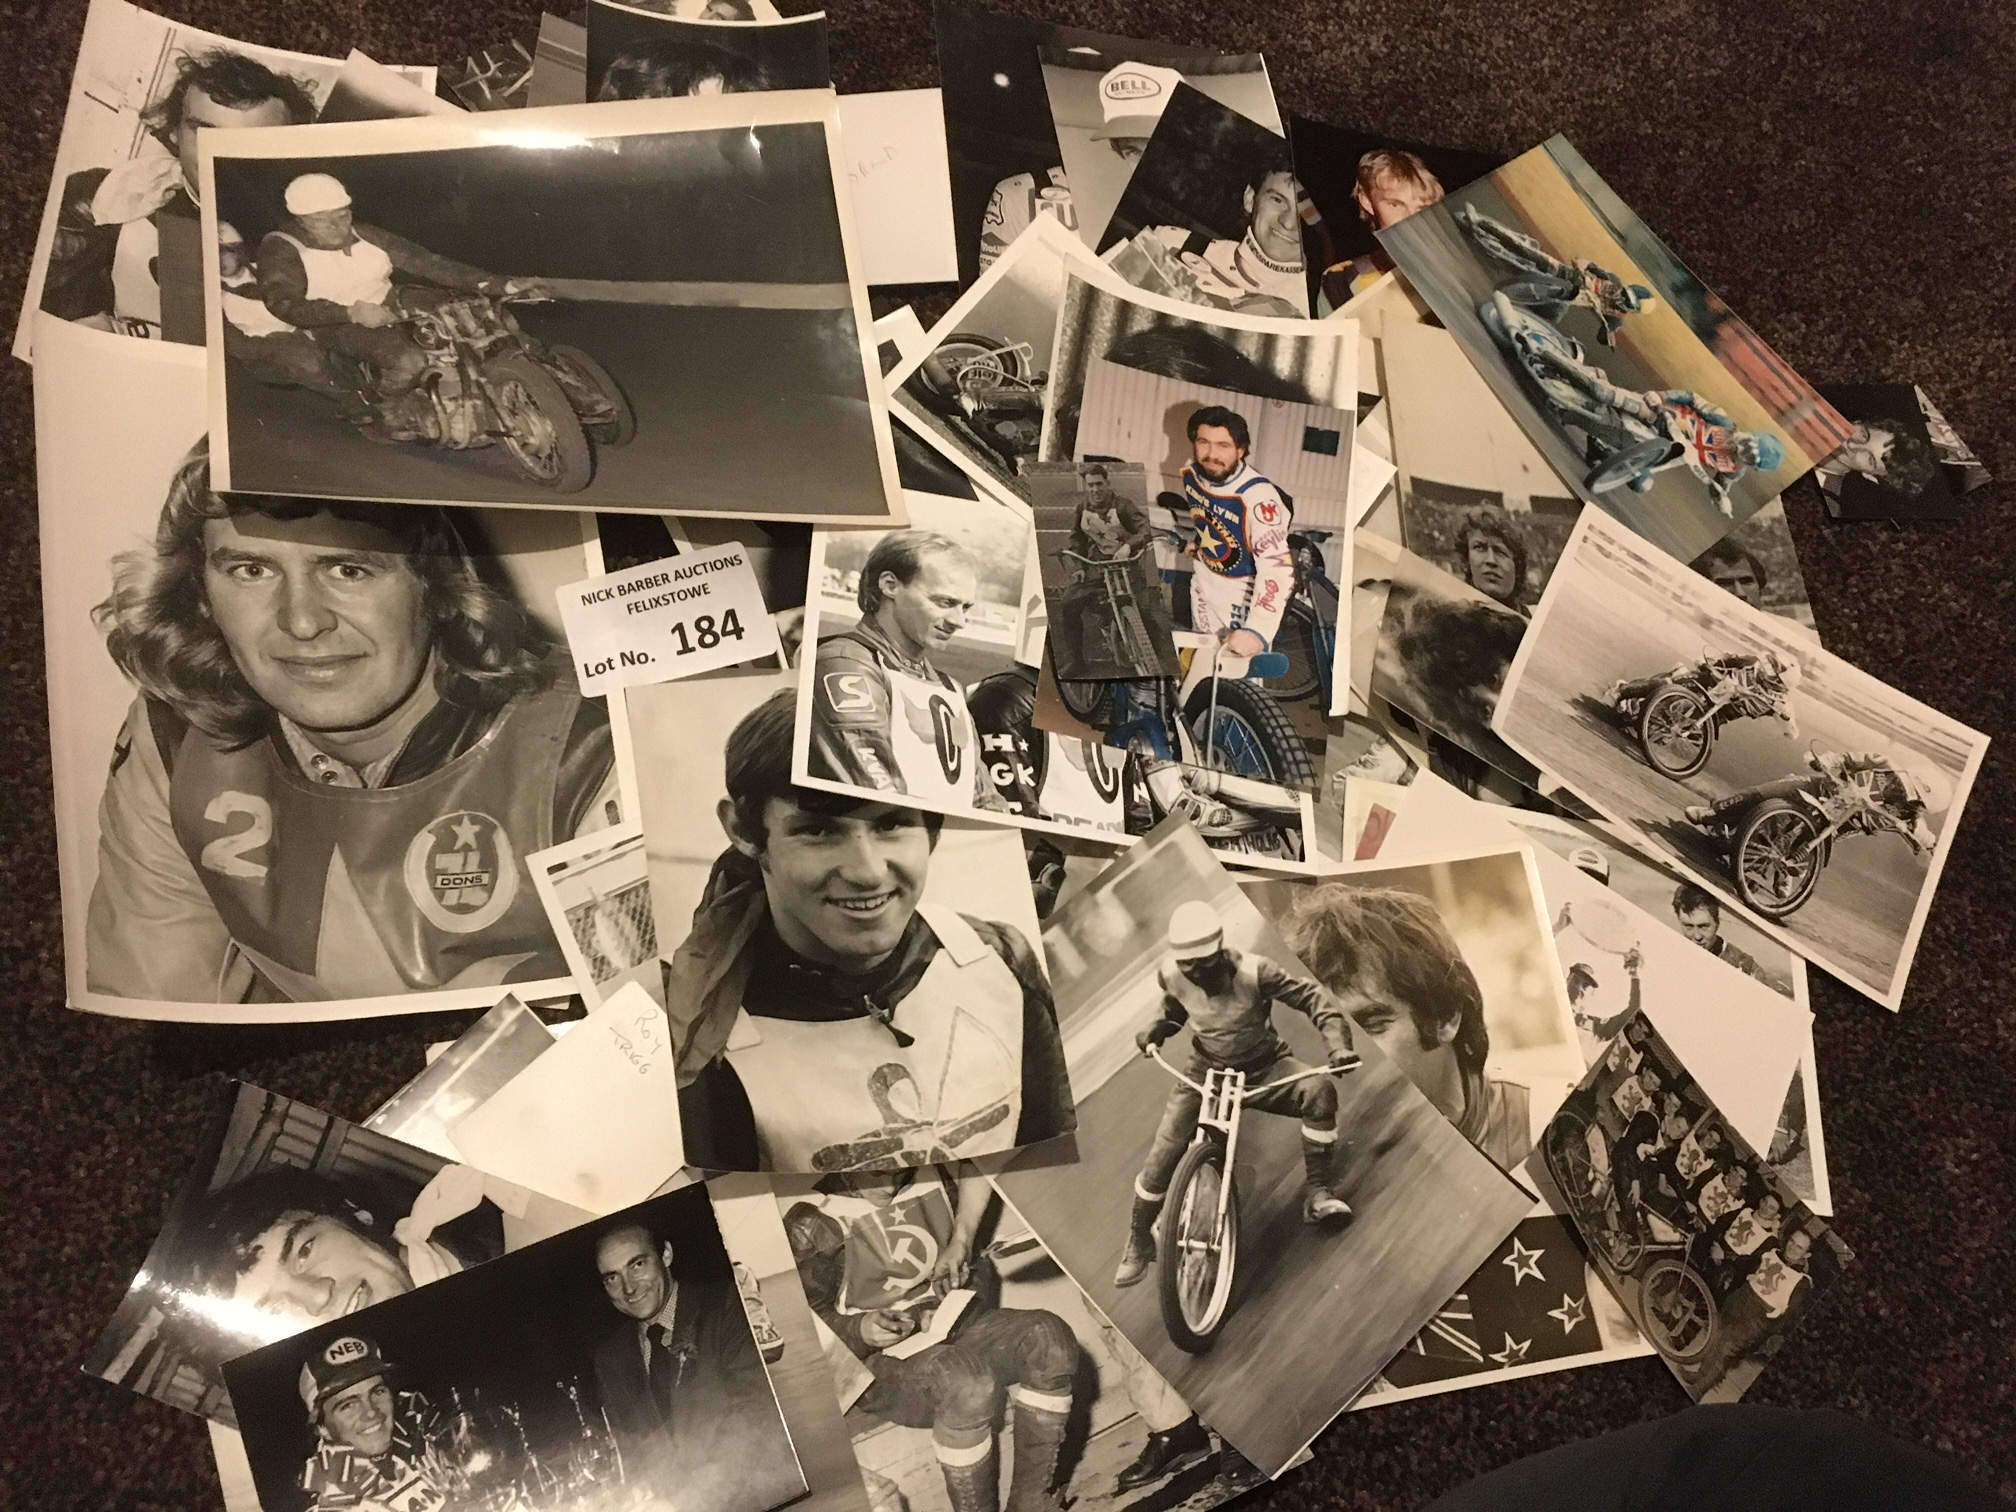 Speedway : Collection of photographs - mostly b/w